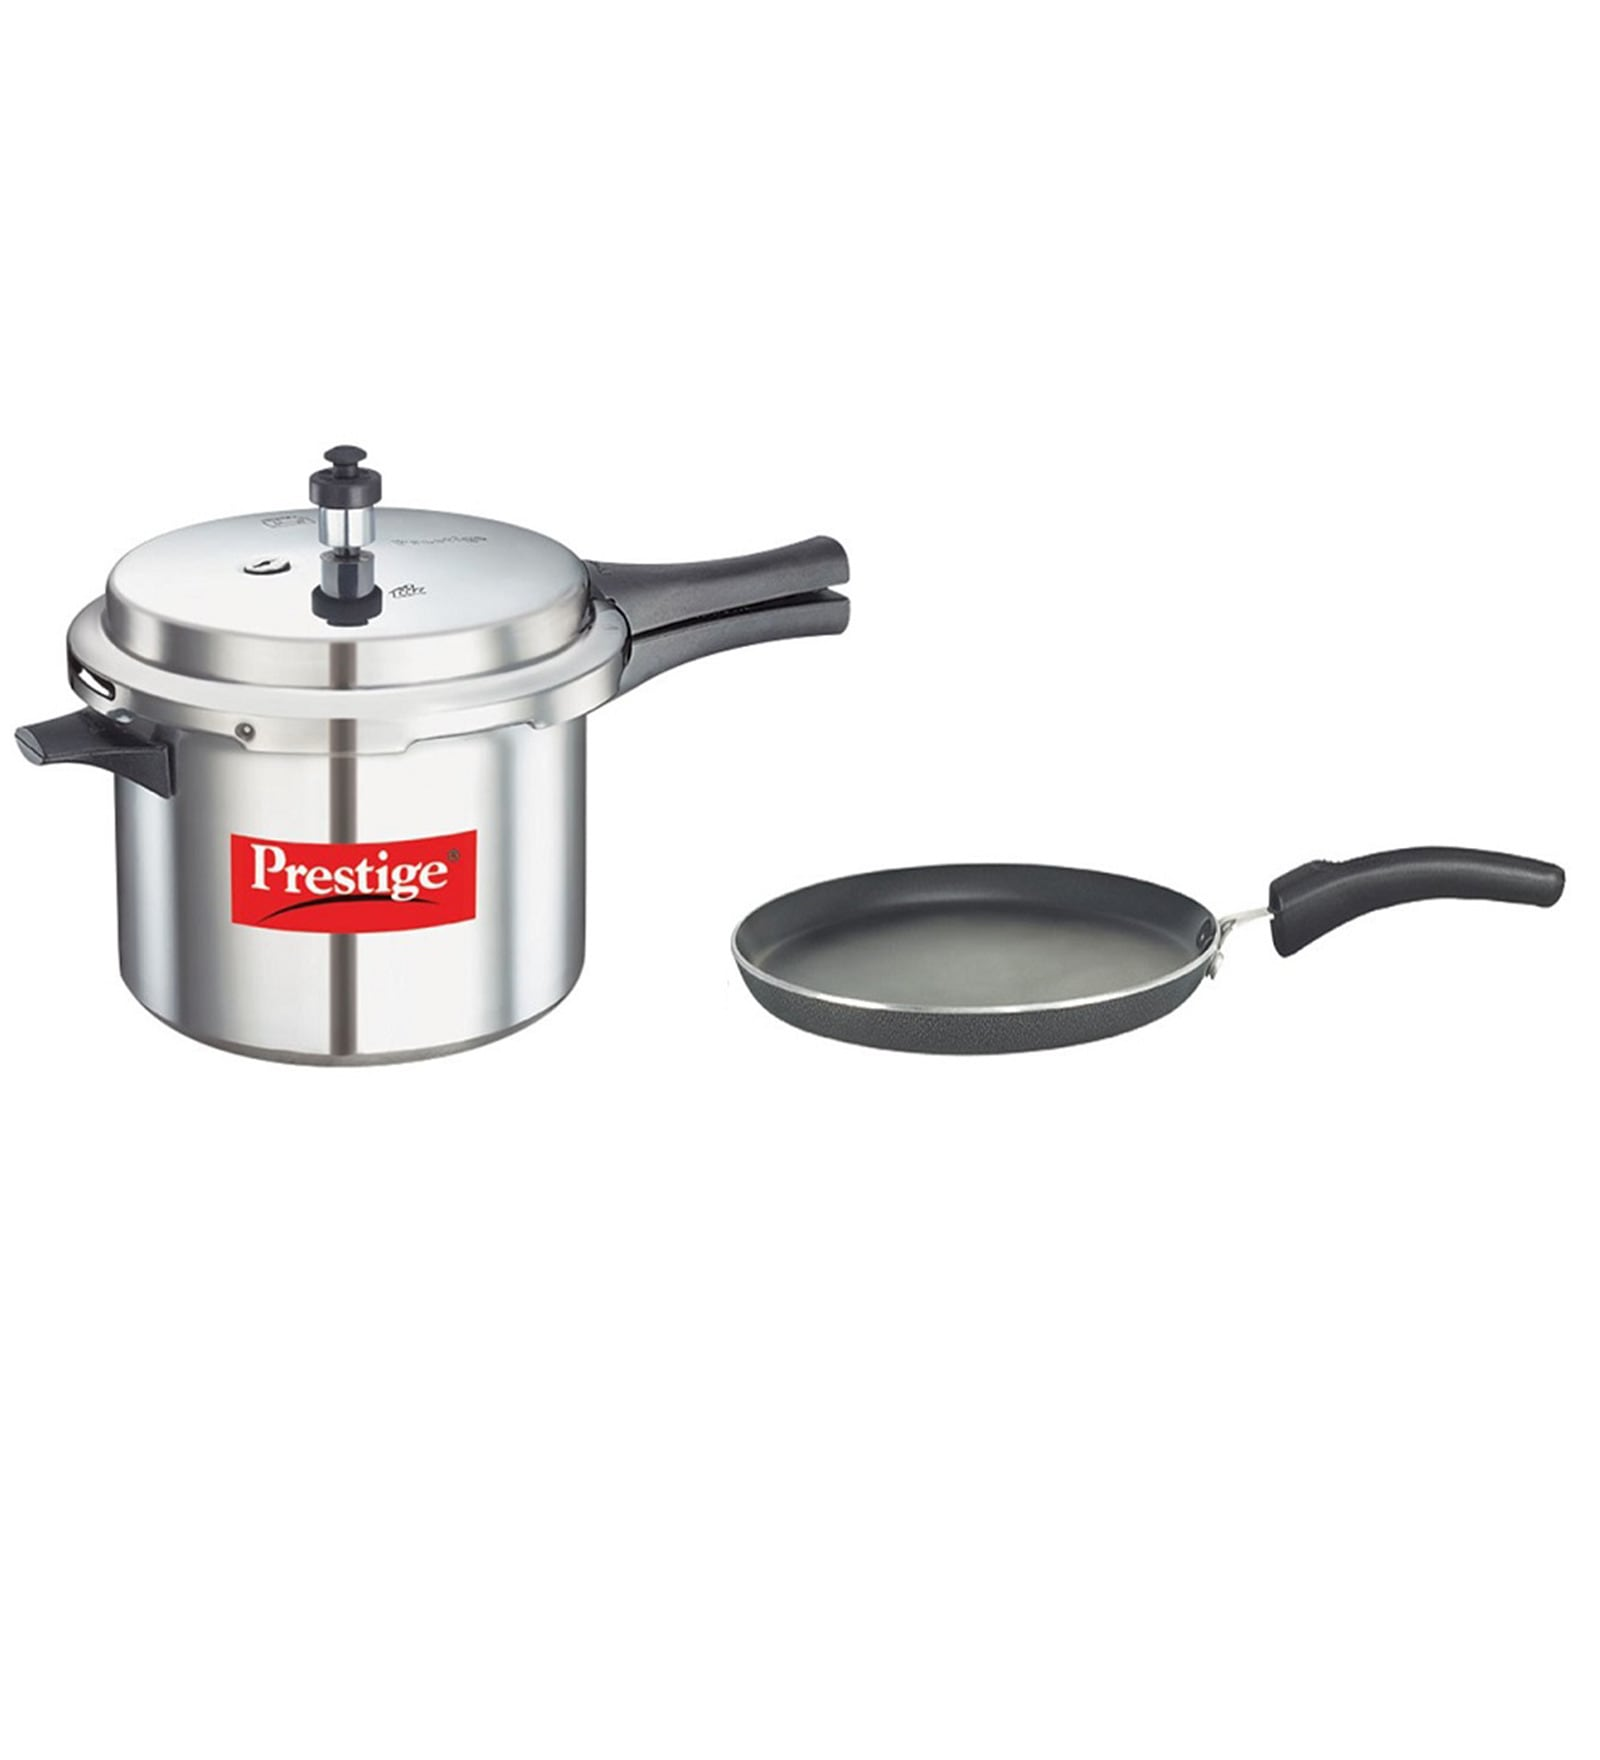 Prestige Popular Aluminium 5 L Pressure Cooker and Omni Pan Set